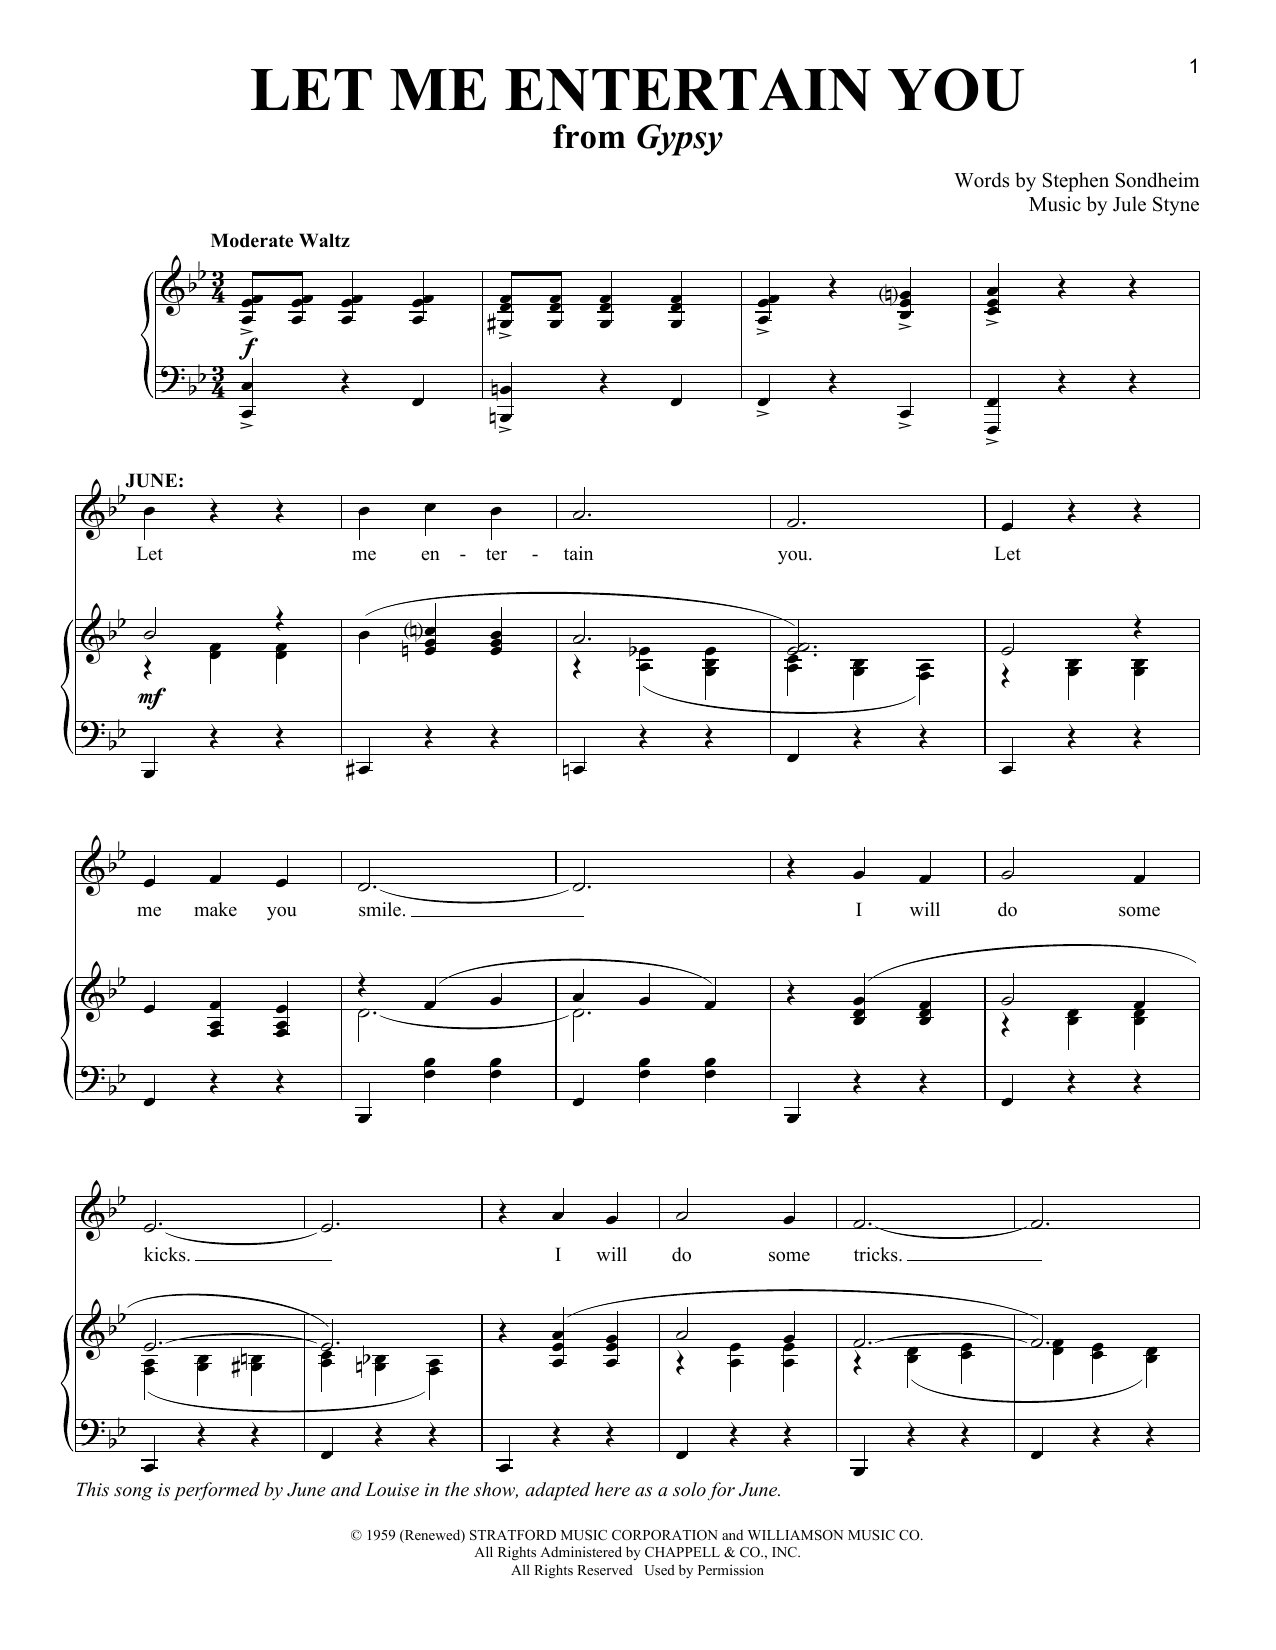 Gypsy Musical - Search Results | Sheet Music Direct522